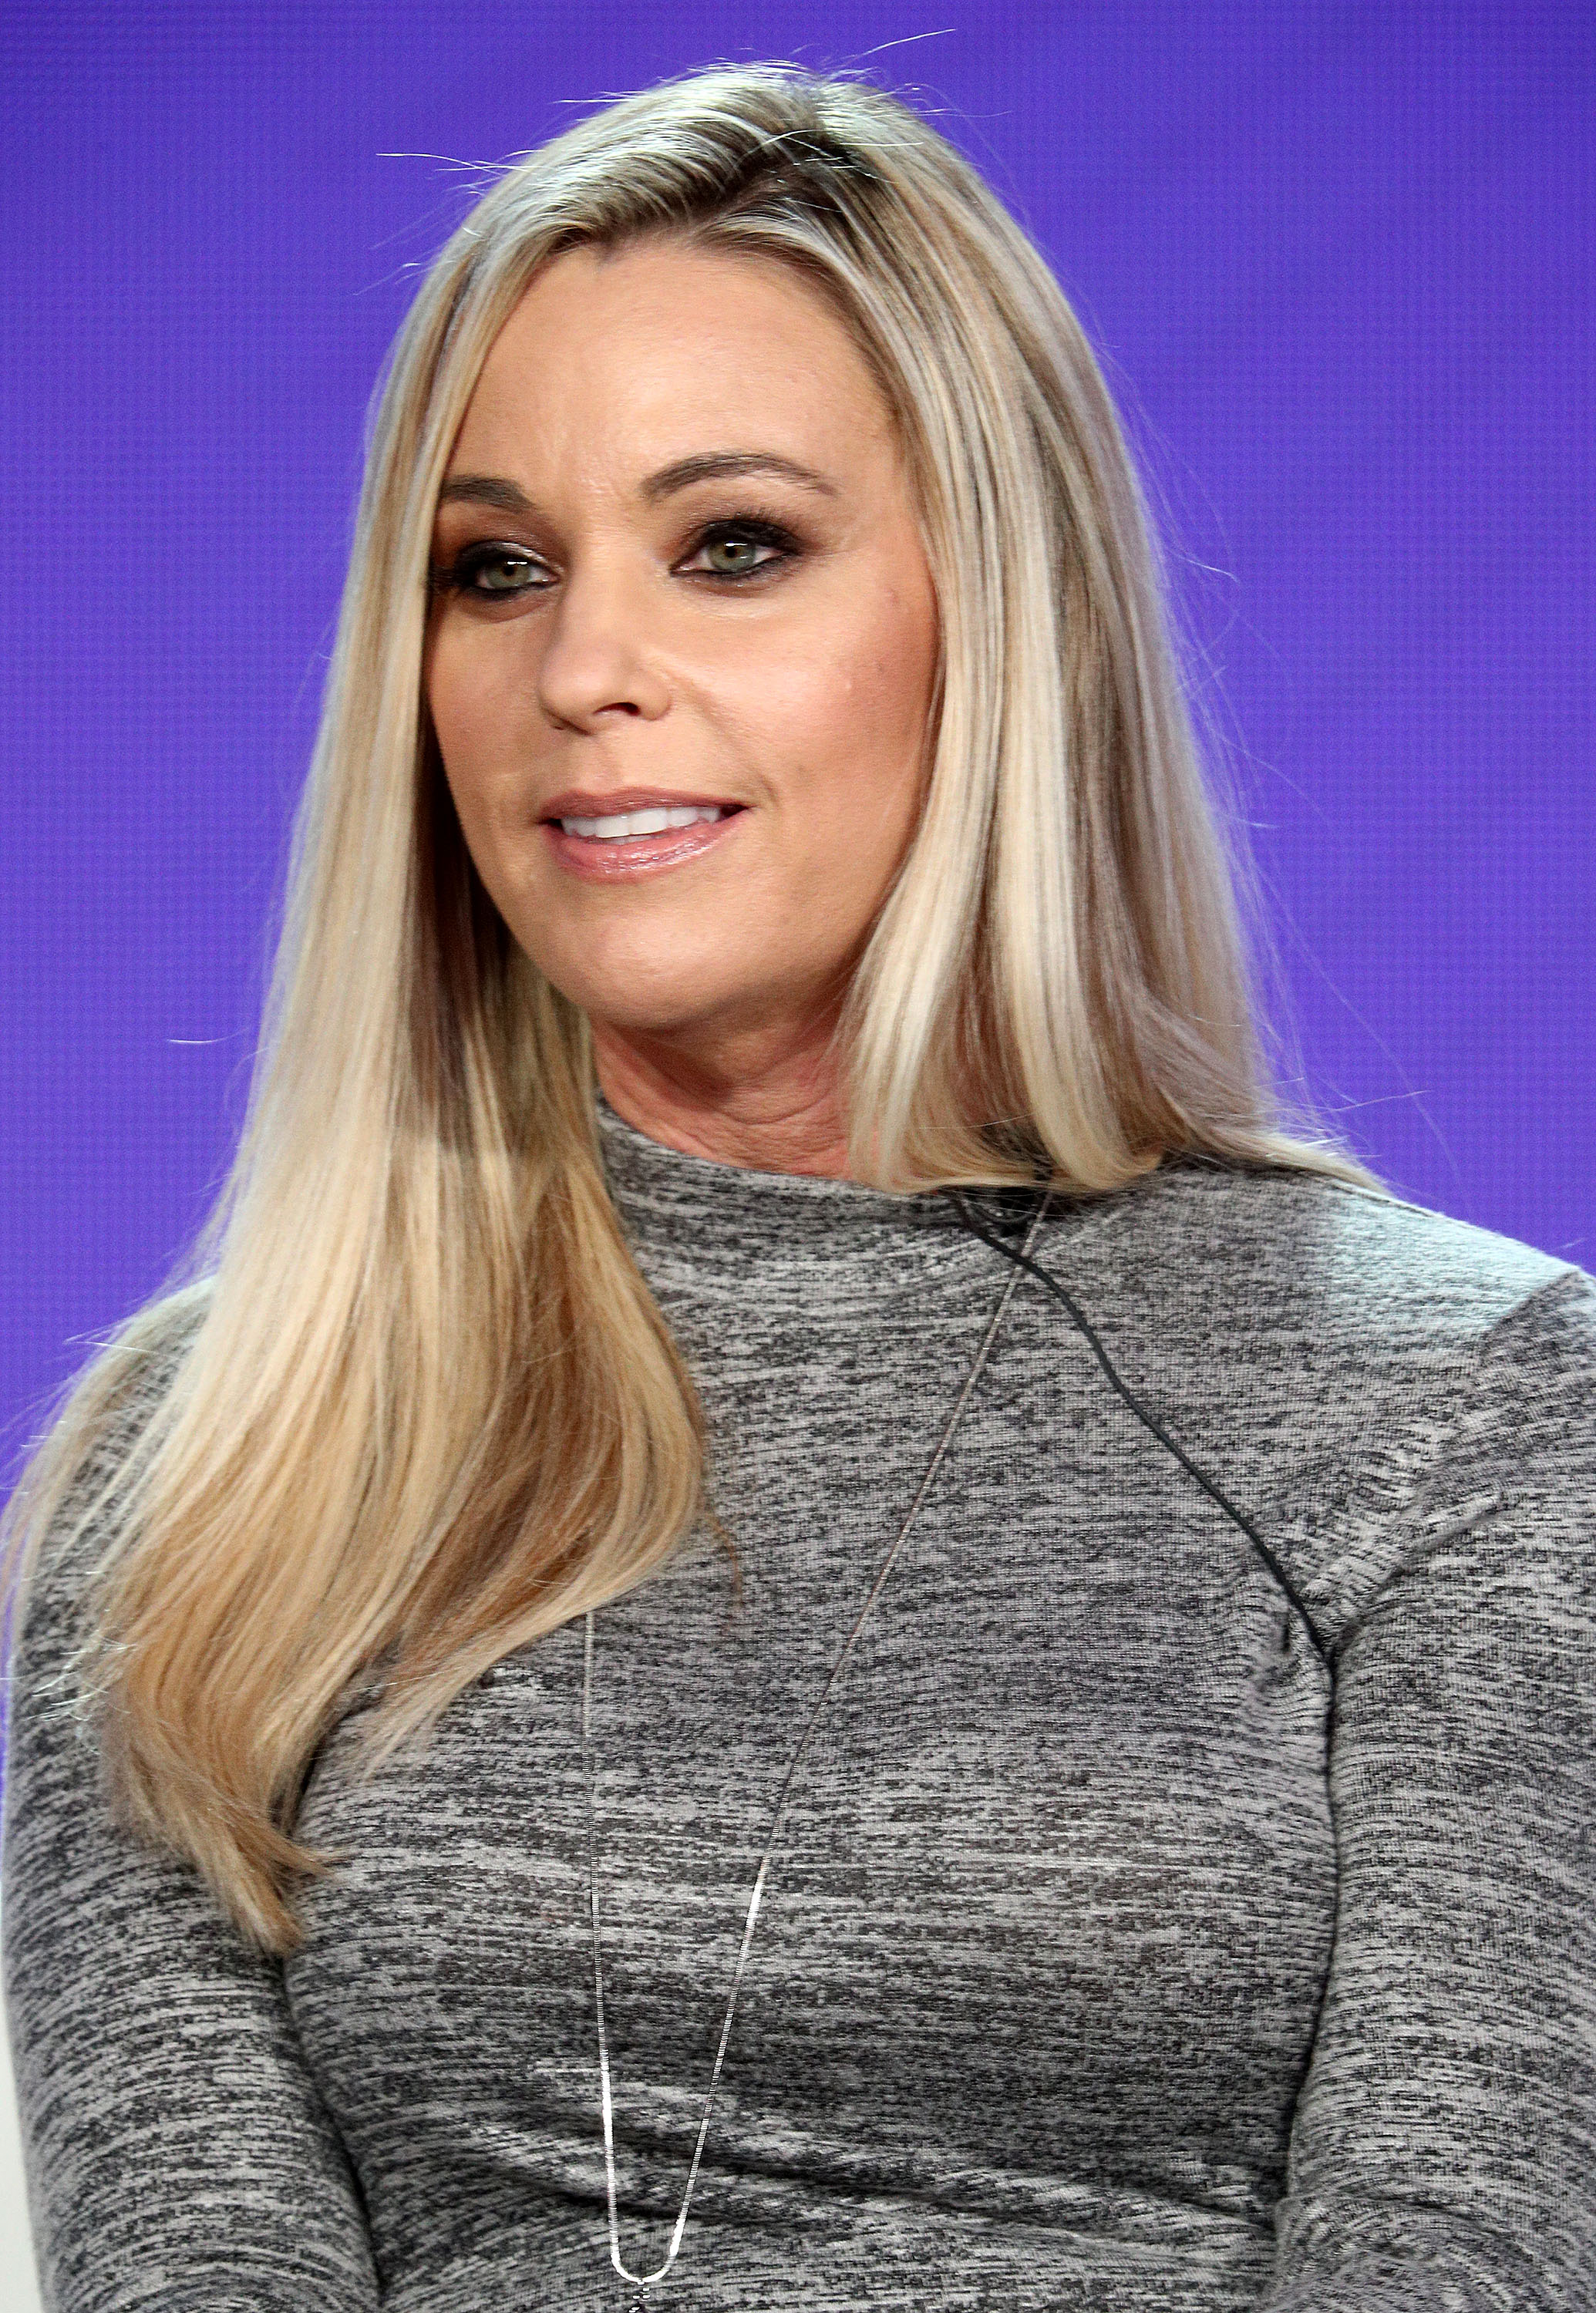 Accusations Made Against Kate Gosselin Over The Years